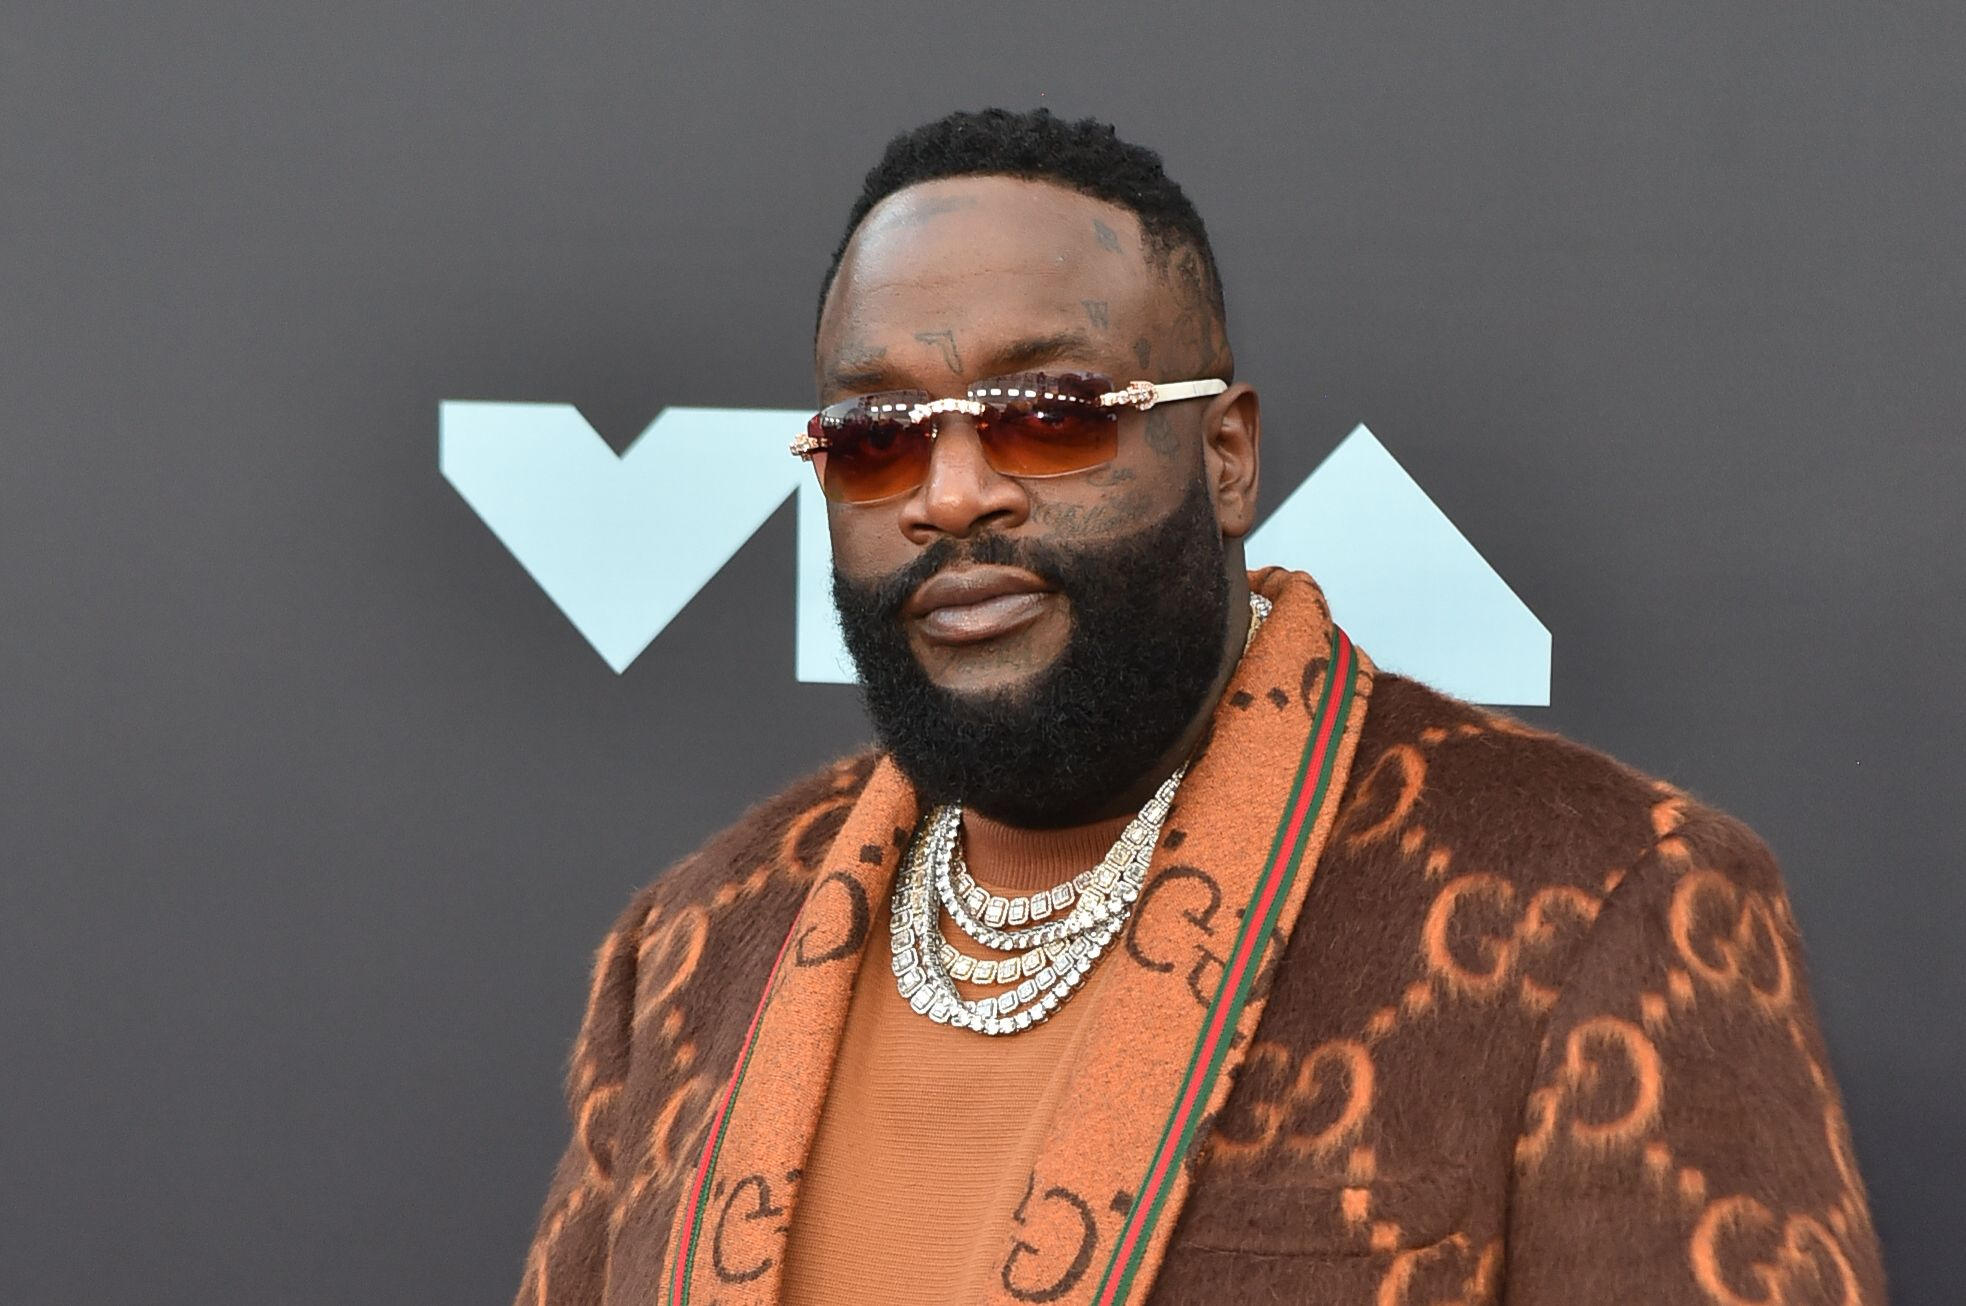 rick-ross-slams-terry-crews-in-new-song-actor-responds